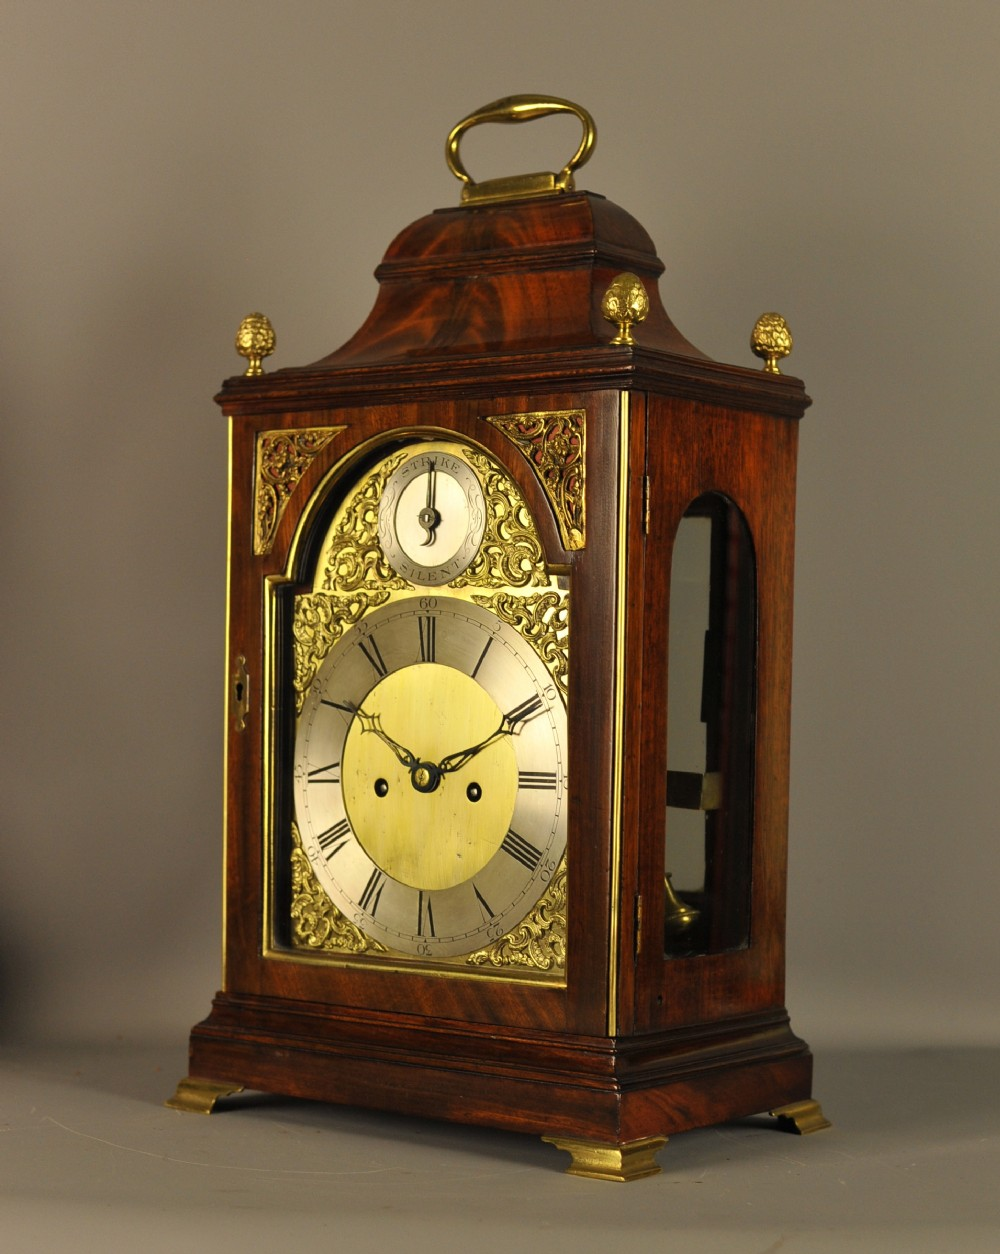 mahogany verge repeating fusee bracket clock